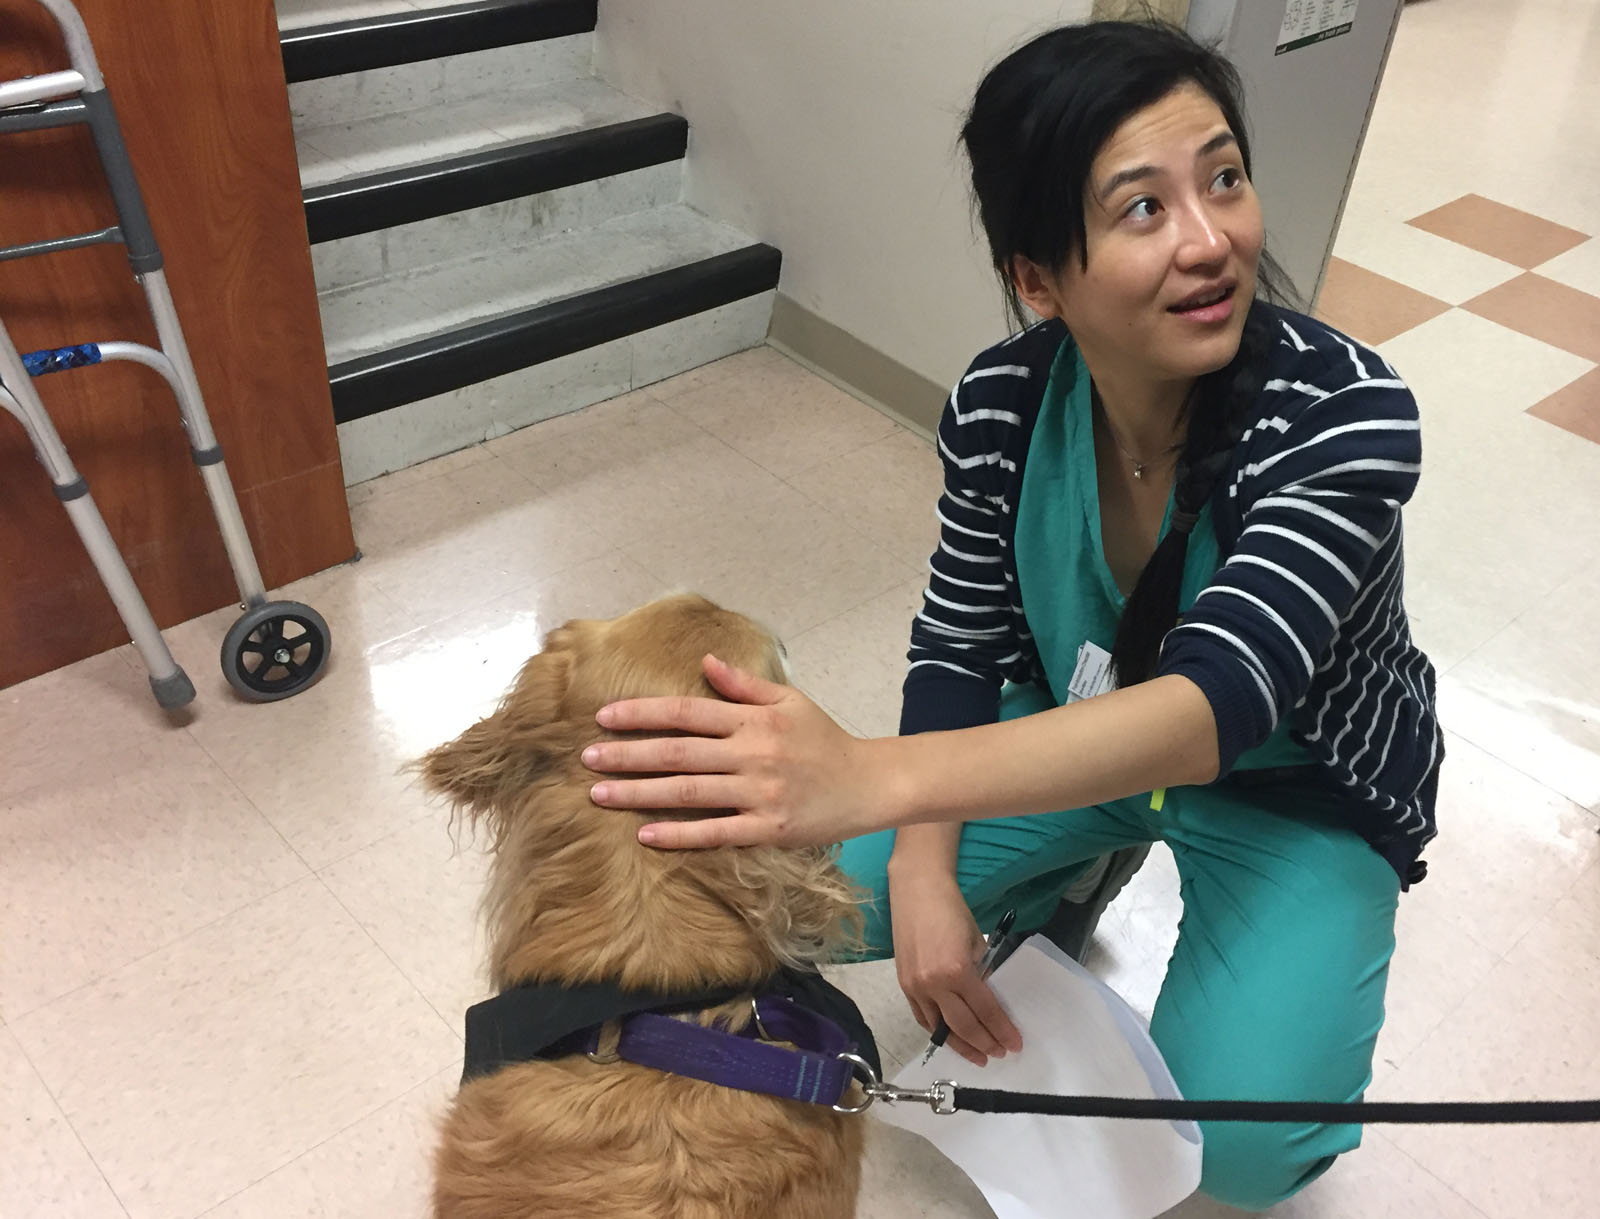 Nurses and other staffers at MedStar Washington Hospital Center enjoyed visits from three therapy dogs brought on Thursday especially for them as part of National Nurses Week. (WTOP/Michelle Basch)